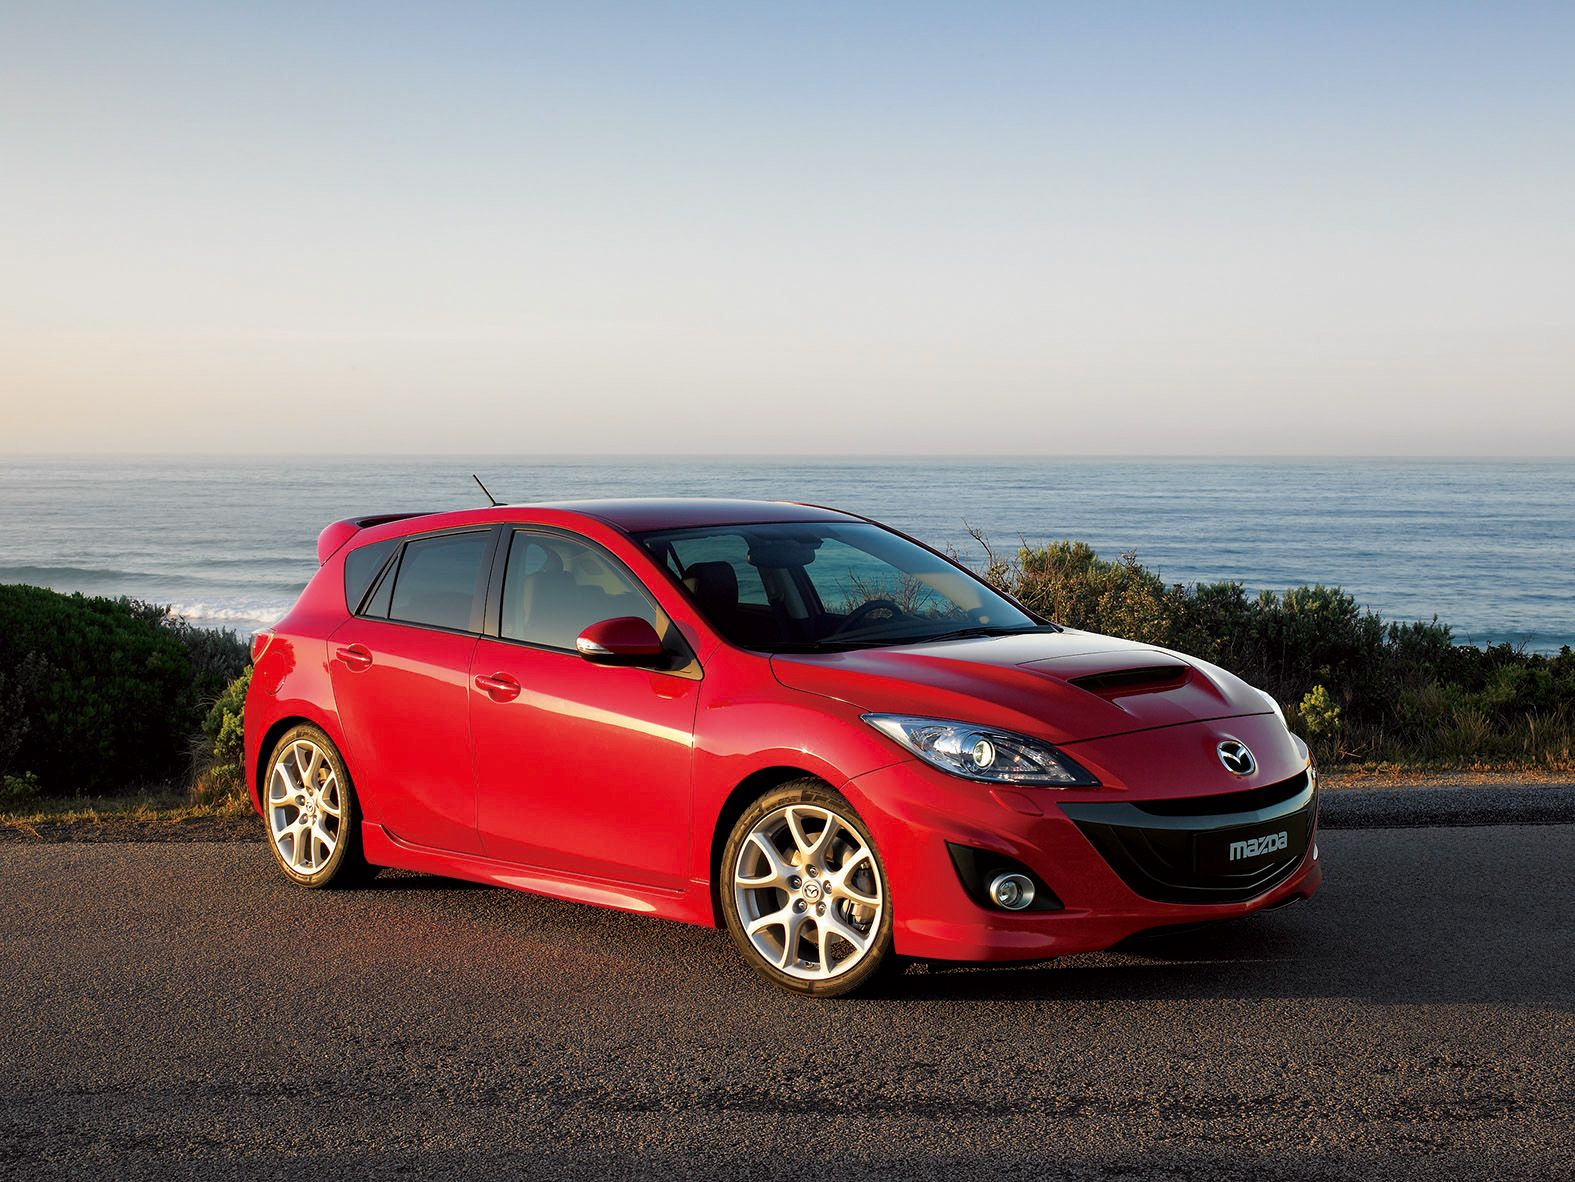 Find this pin and more on mazdaspeed3